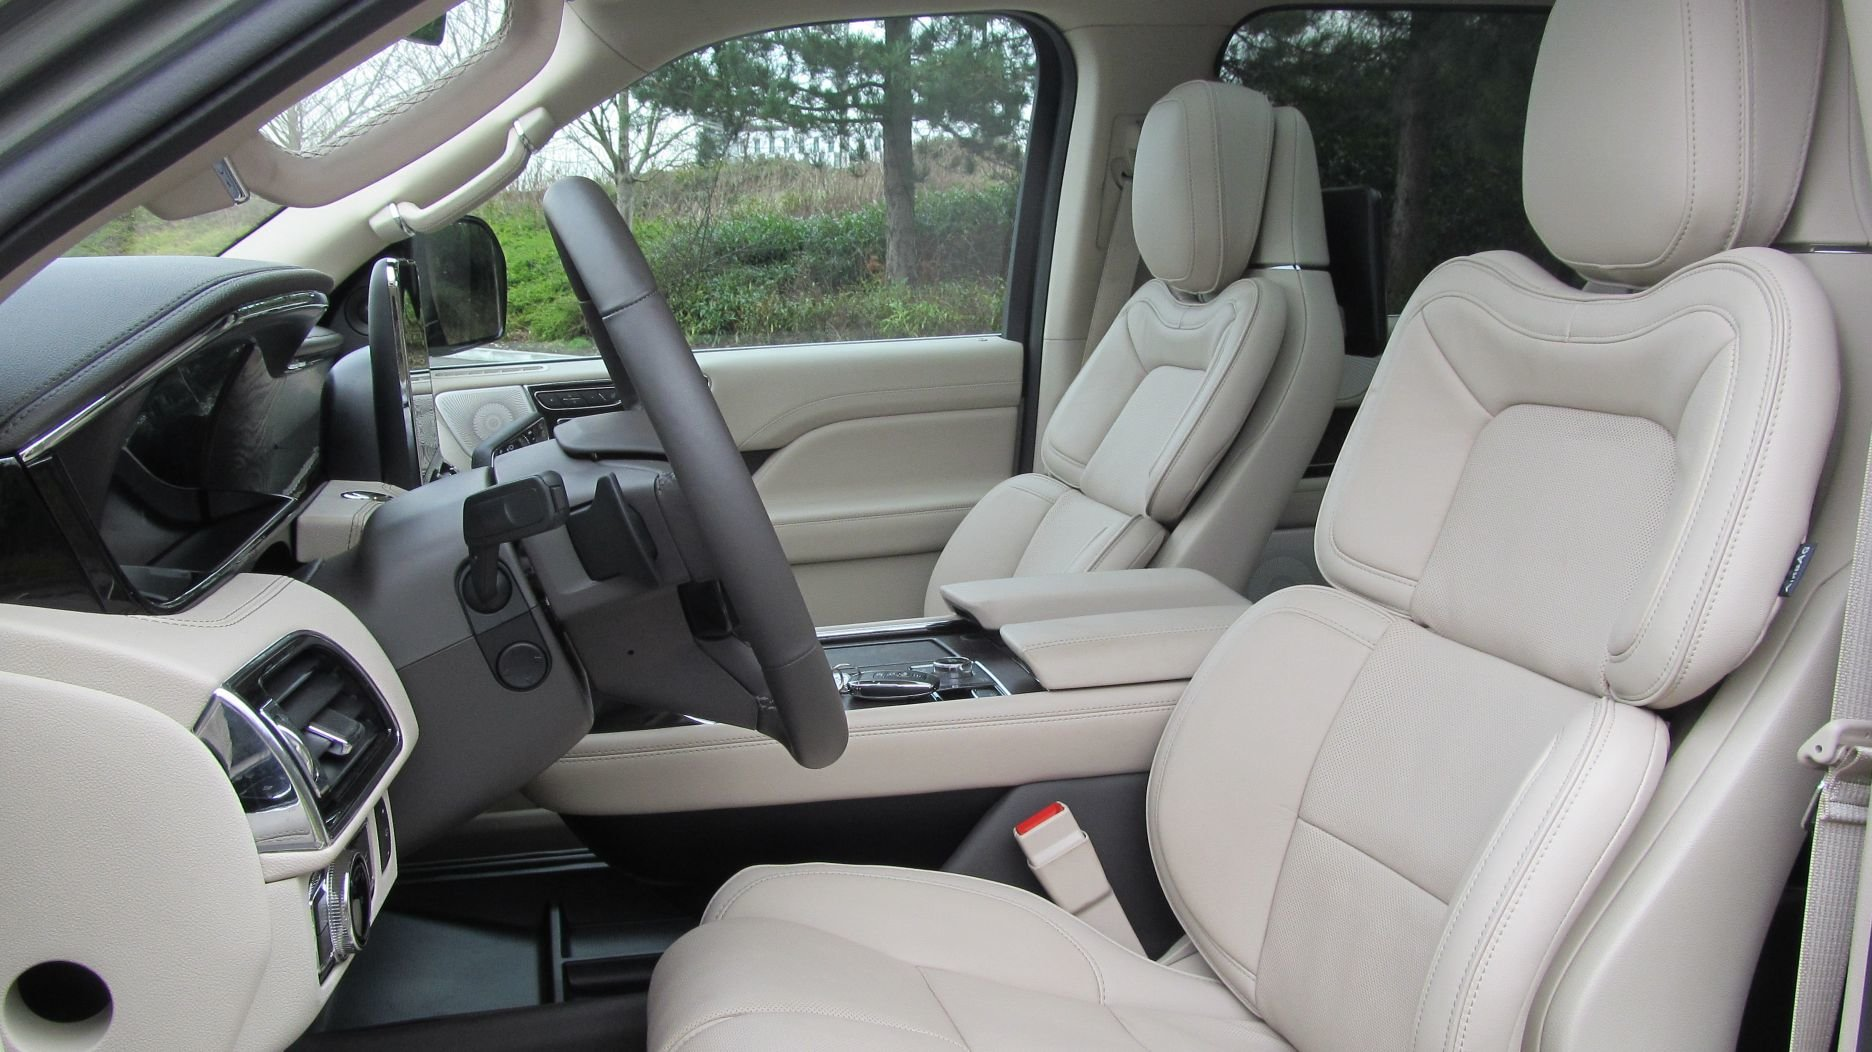 2019 Lincoln Navigator reserve 3.5L V6 Twin Turbo 4x4 For Sale (picture 4 of 6)